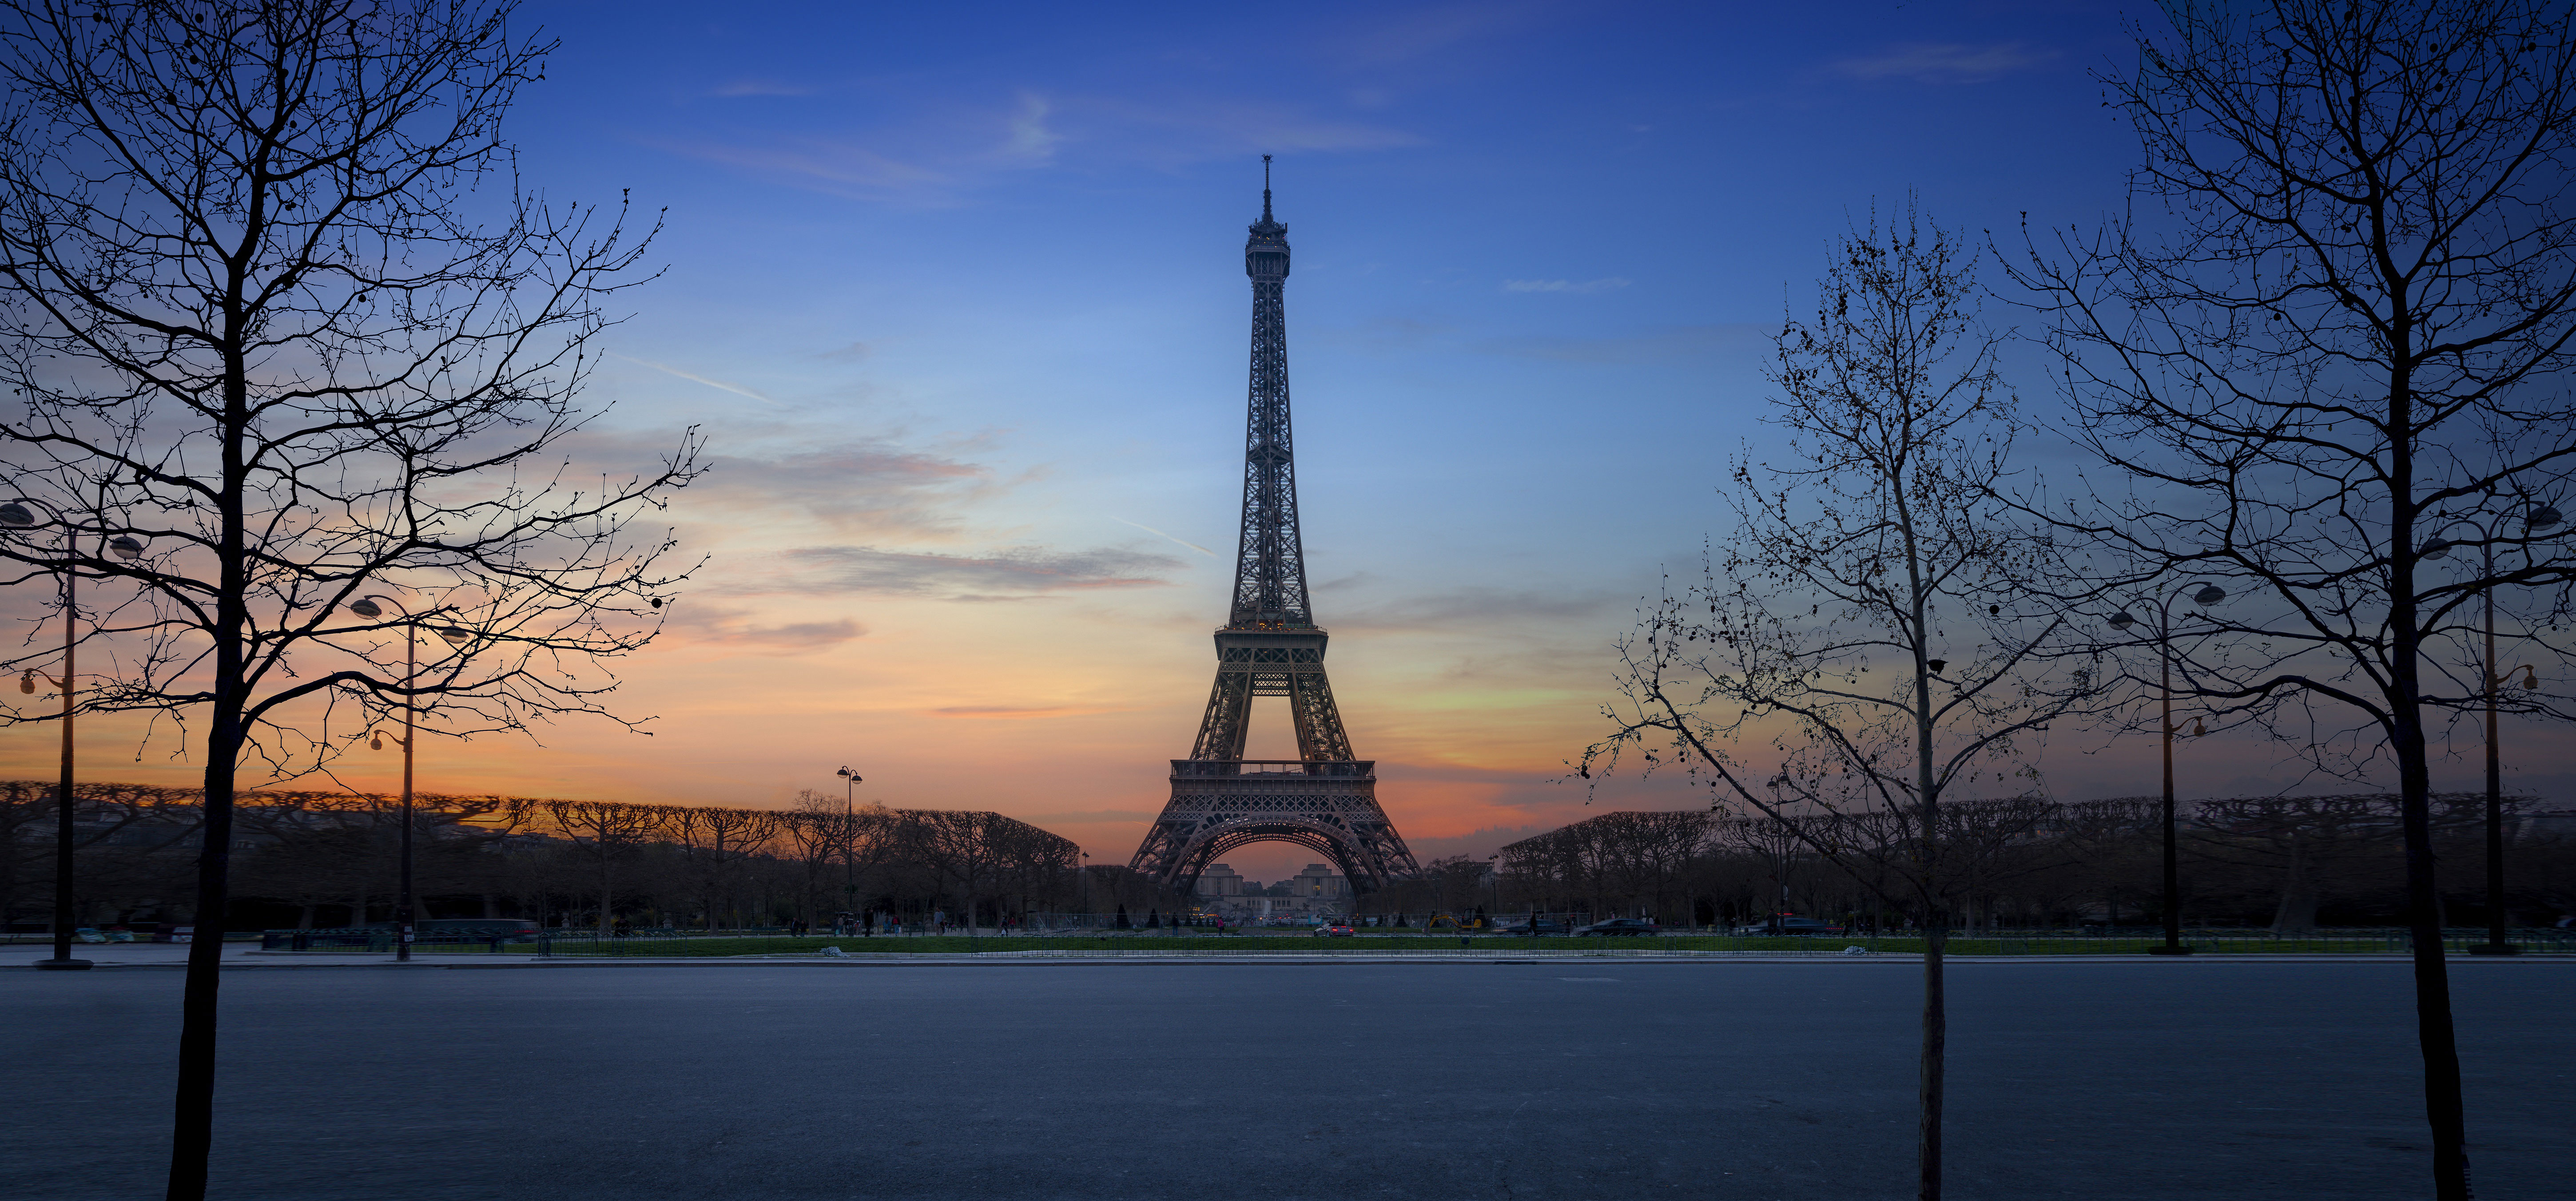 1366x768 Eiffel Tower Paris 1366x768 Resolution Hd 4k Wallpapers Images Backgrounds Photos And Pictures